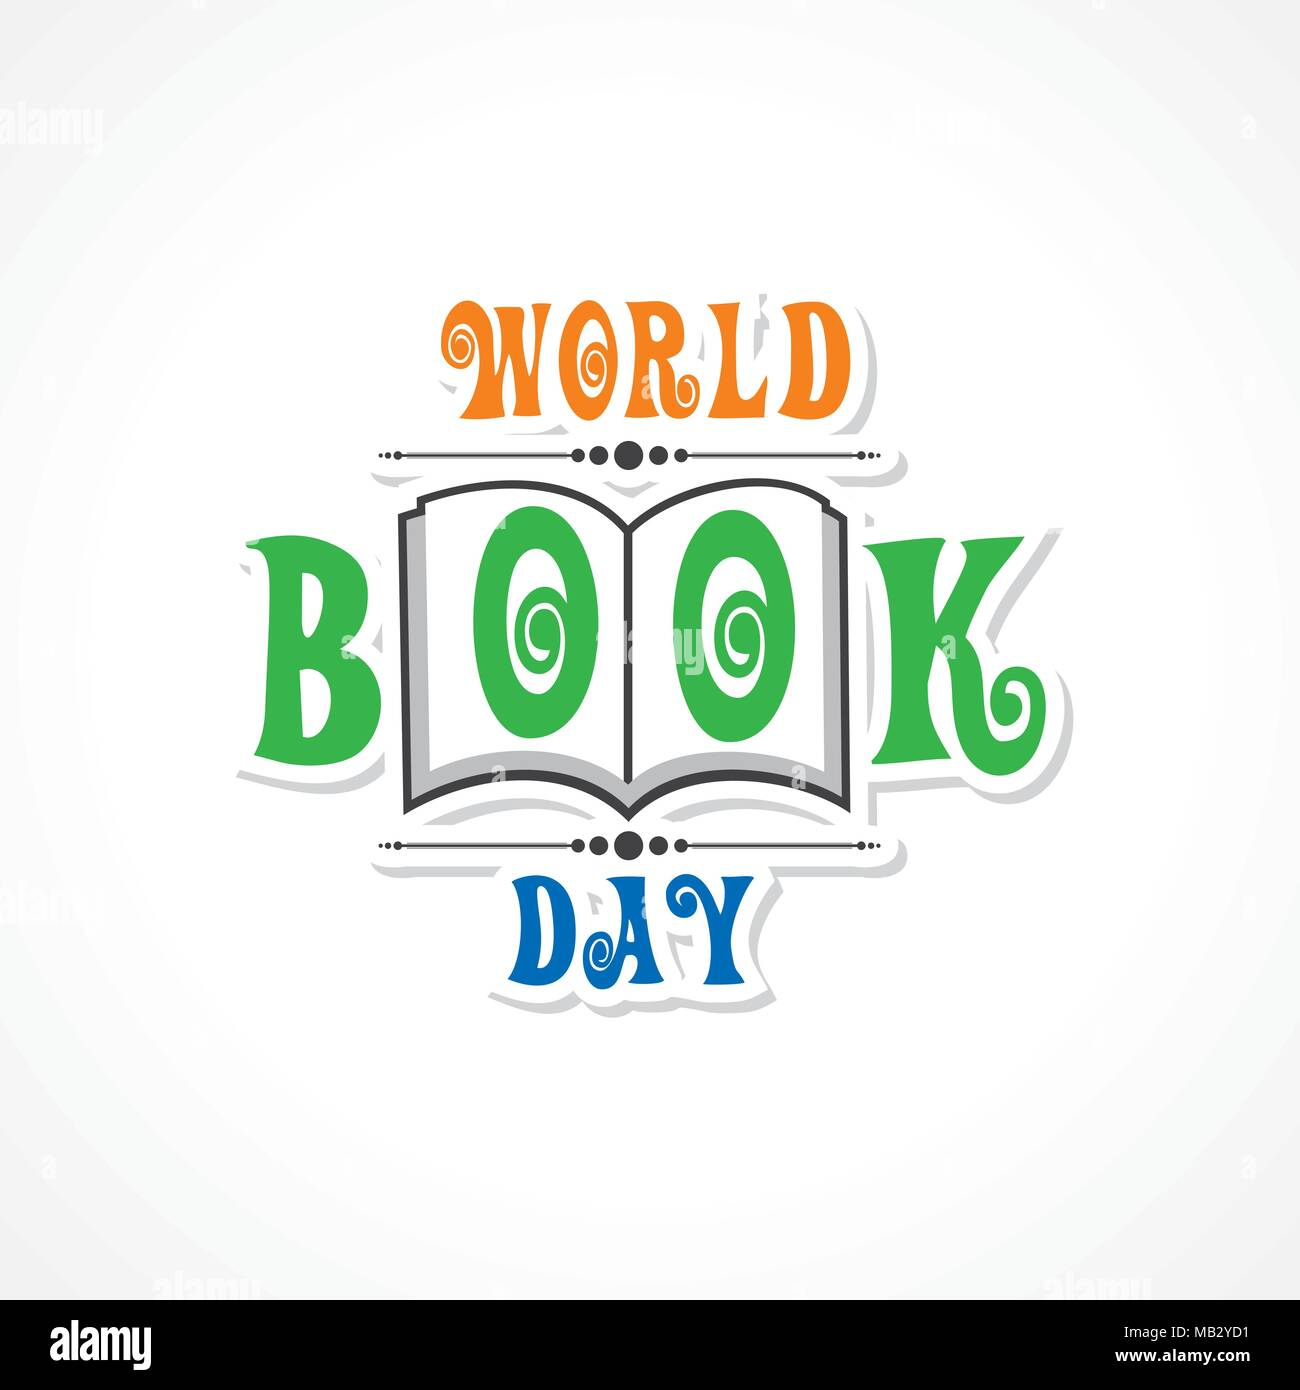 Vector Illustration of World Book Day - Education Concept - Stock Vector